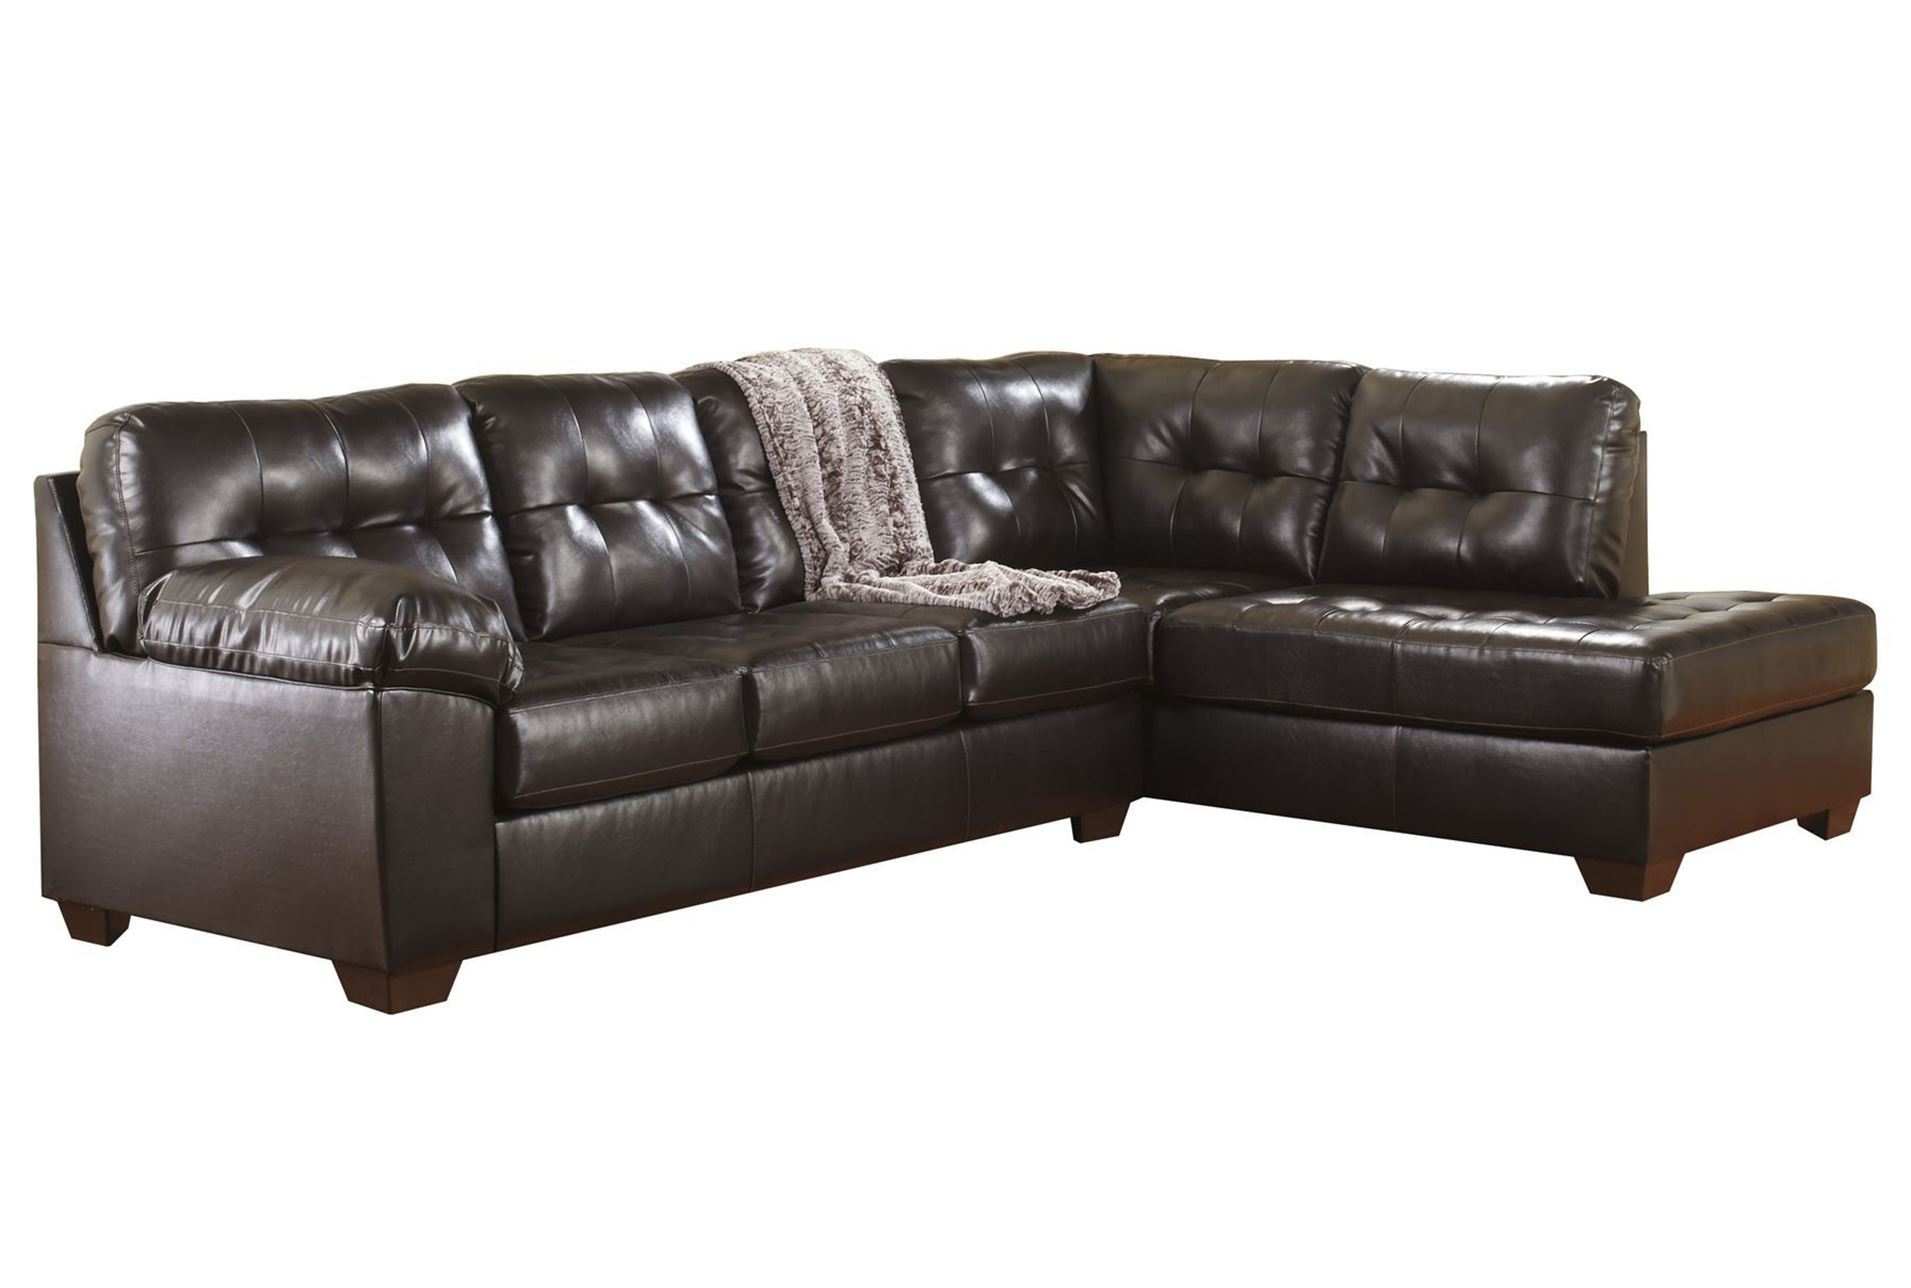 Elegant Furniture Combined with Living Room Sectionals: Dark Brown Leather Living Room Sectionals